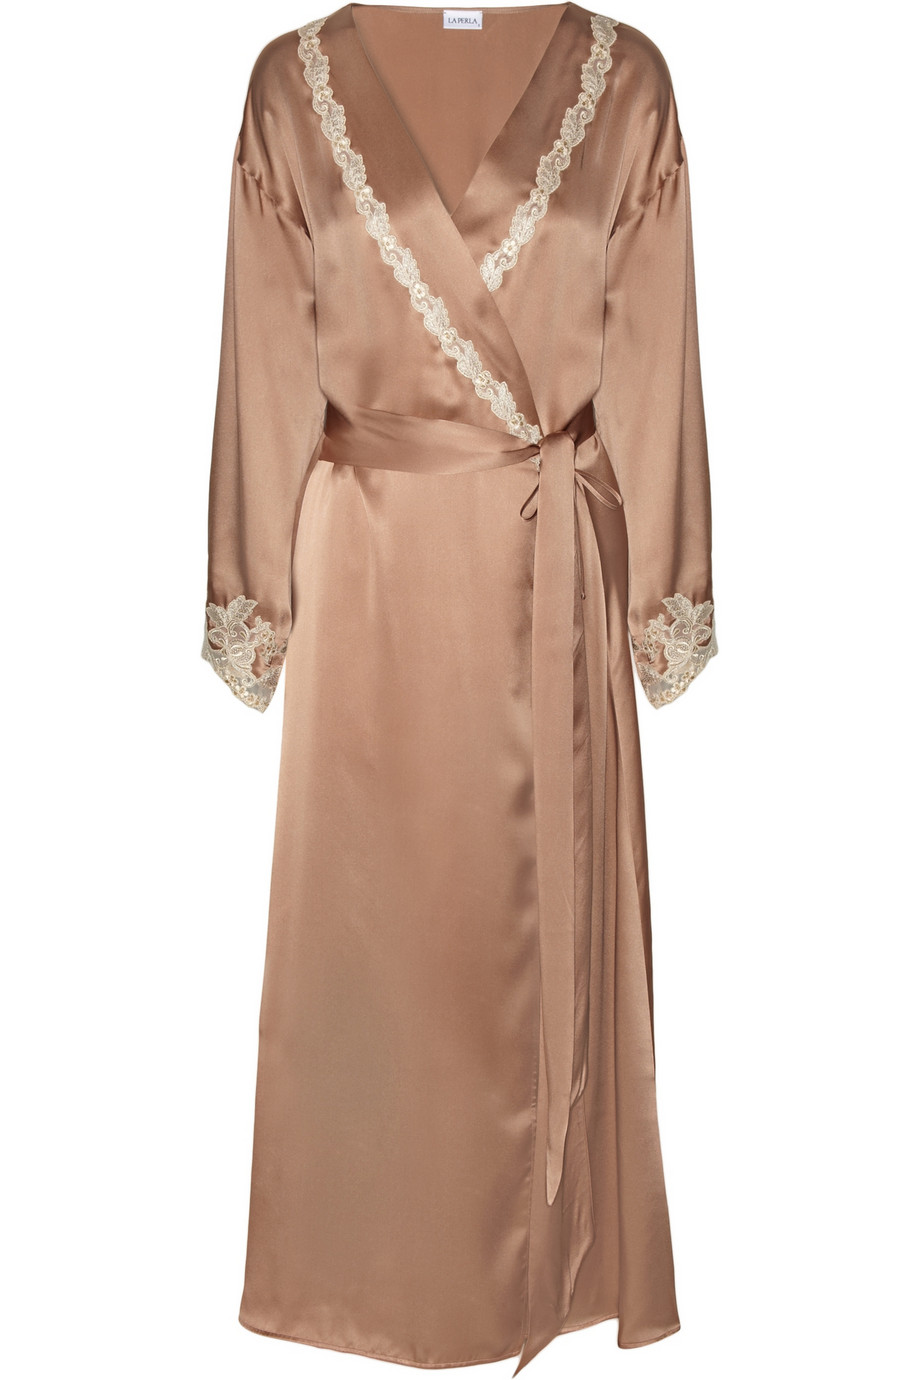 LA PERLA Maison silk-satin and lace robe